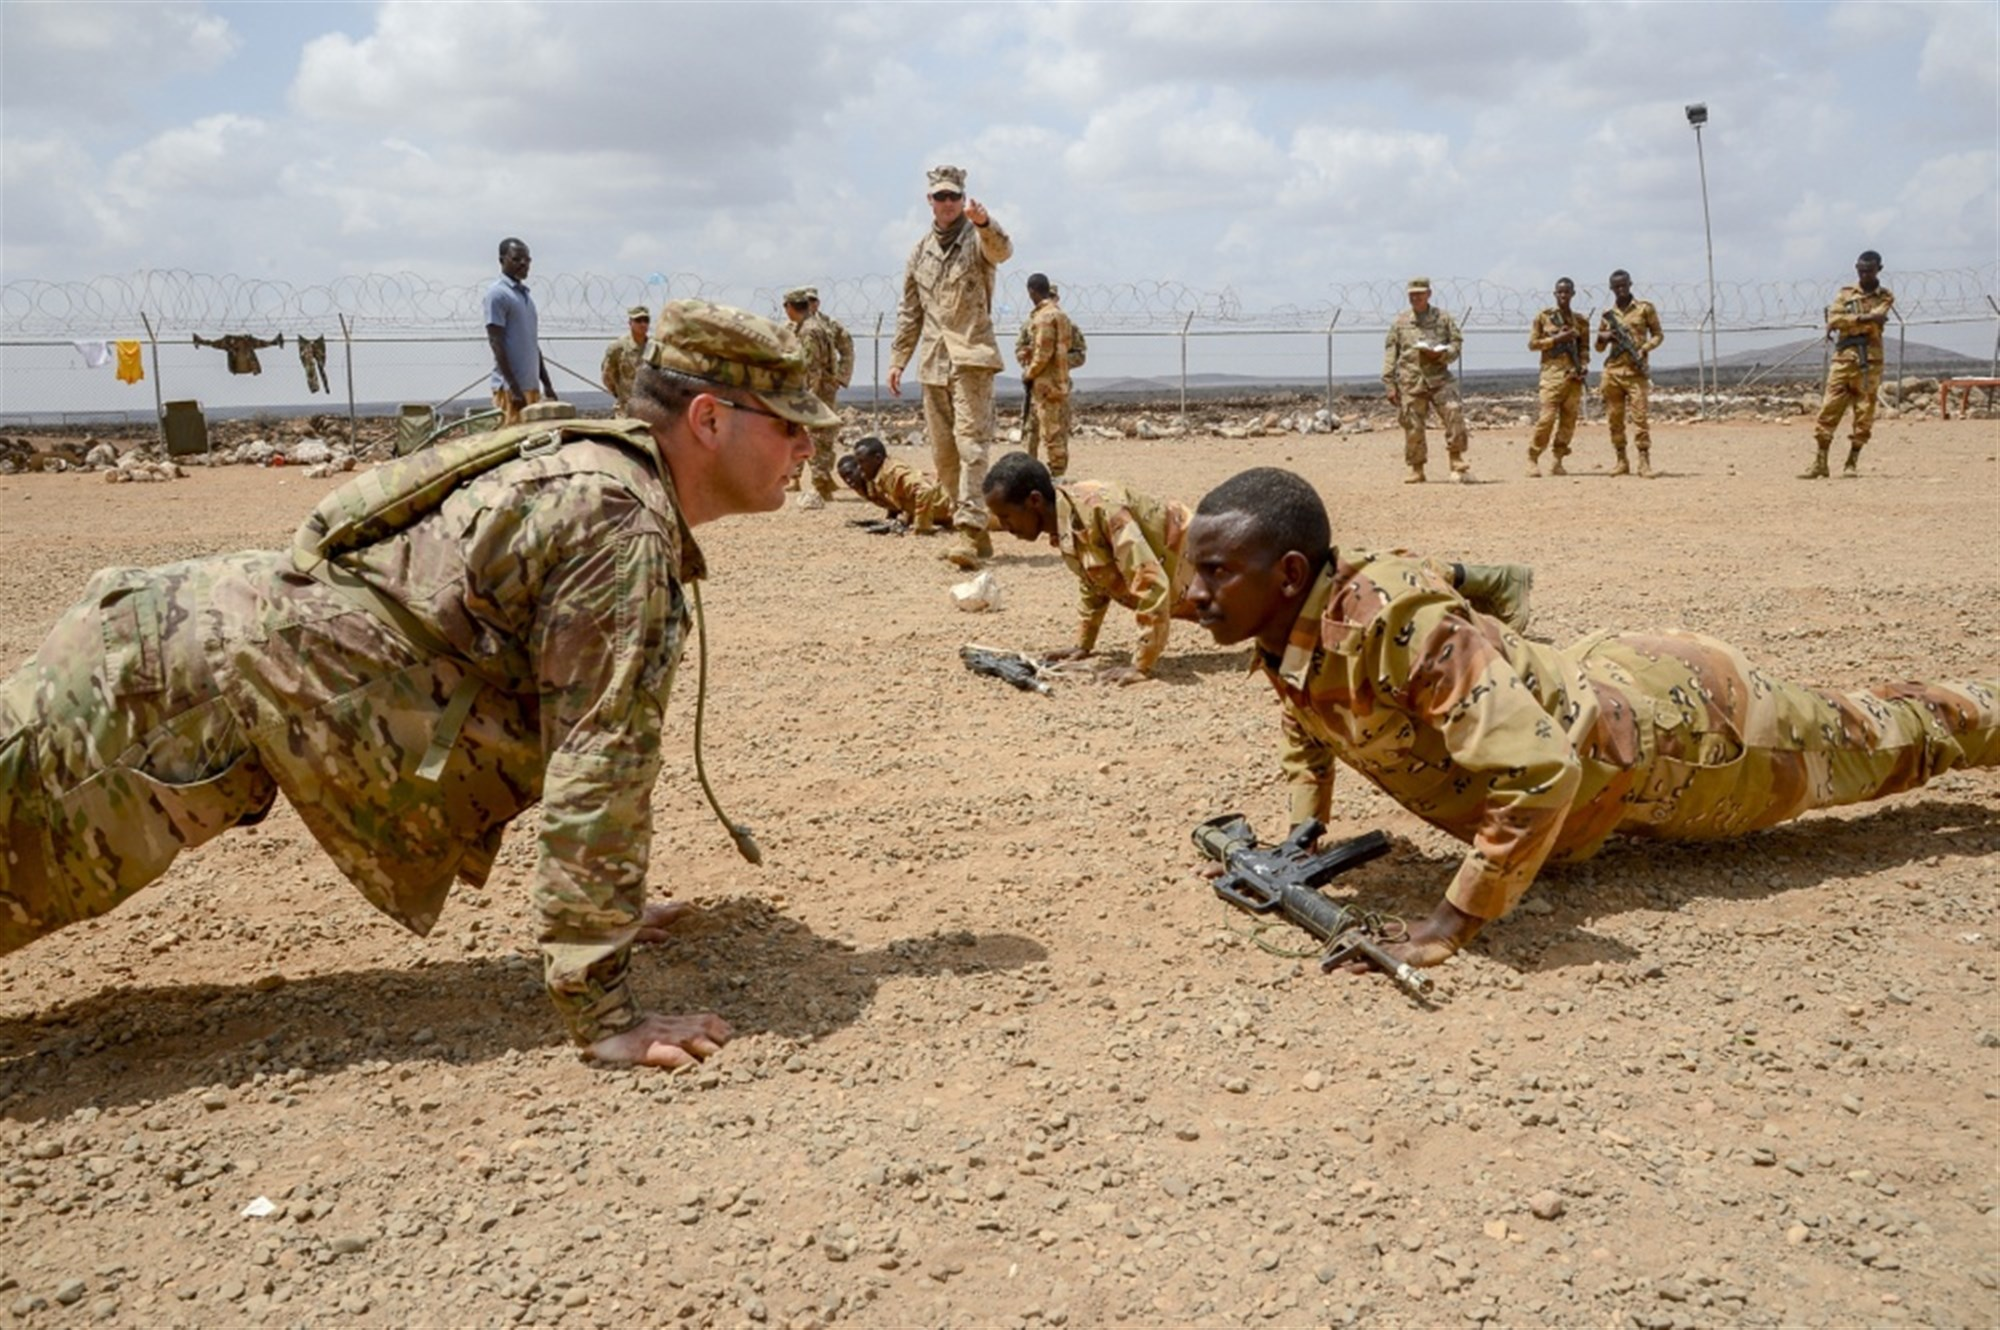 U.S. Army Sergeant Vincent Merriman, Alpha Company, 3rd Battalion, 141st Infantry Regiment, Texas National Guard, demonstrates a proper pushup for a Djiboutian soldier at a training site outside Djibouti City, April 19, 2018. U.S. service members have been training the Djiboutian Army's Rapid Intervention Battalion, a newly formed crisis response unit.